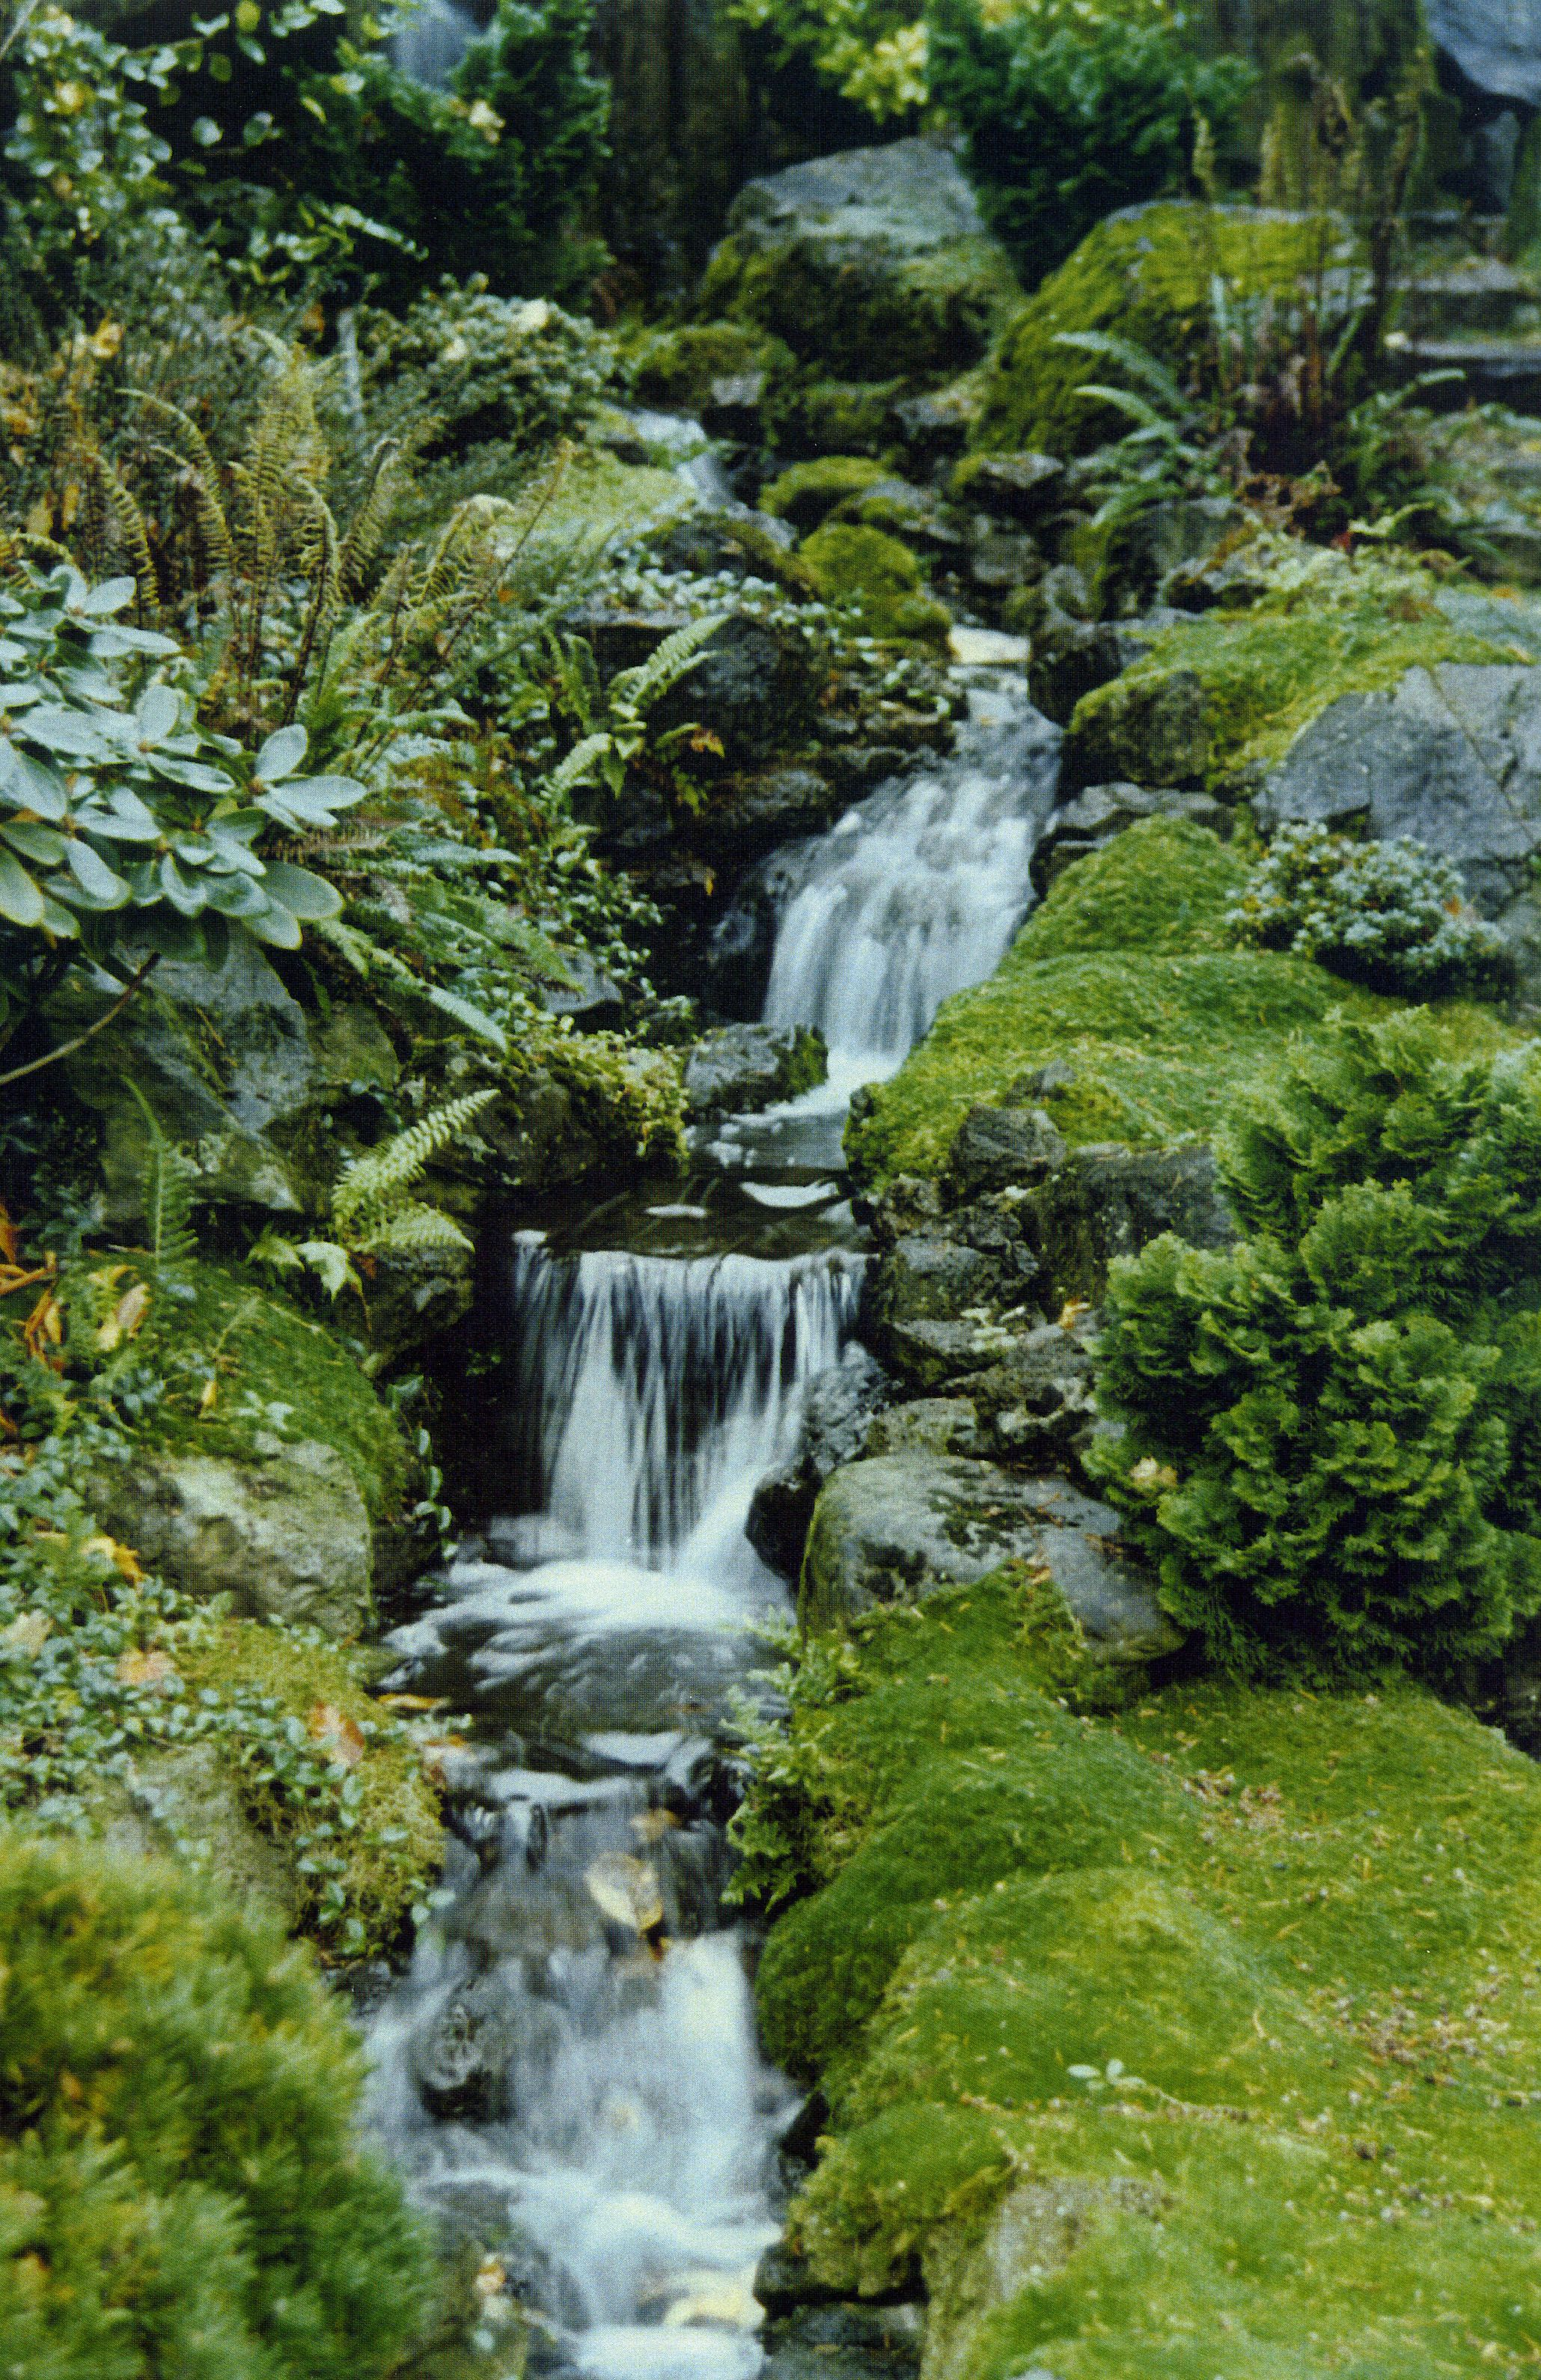 peaceful ideas waterfall showers. Garden ideas Water features are some of the most peace inducing ingredients in